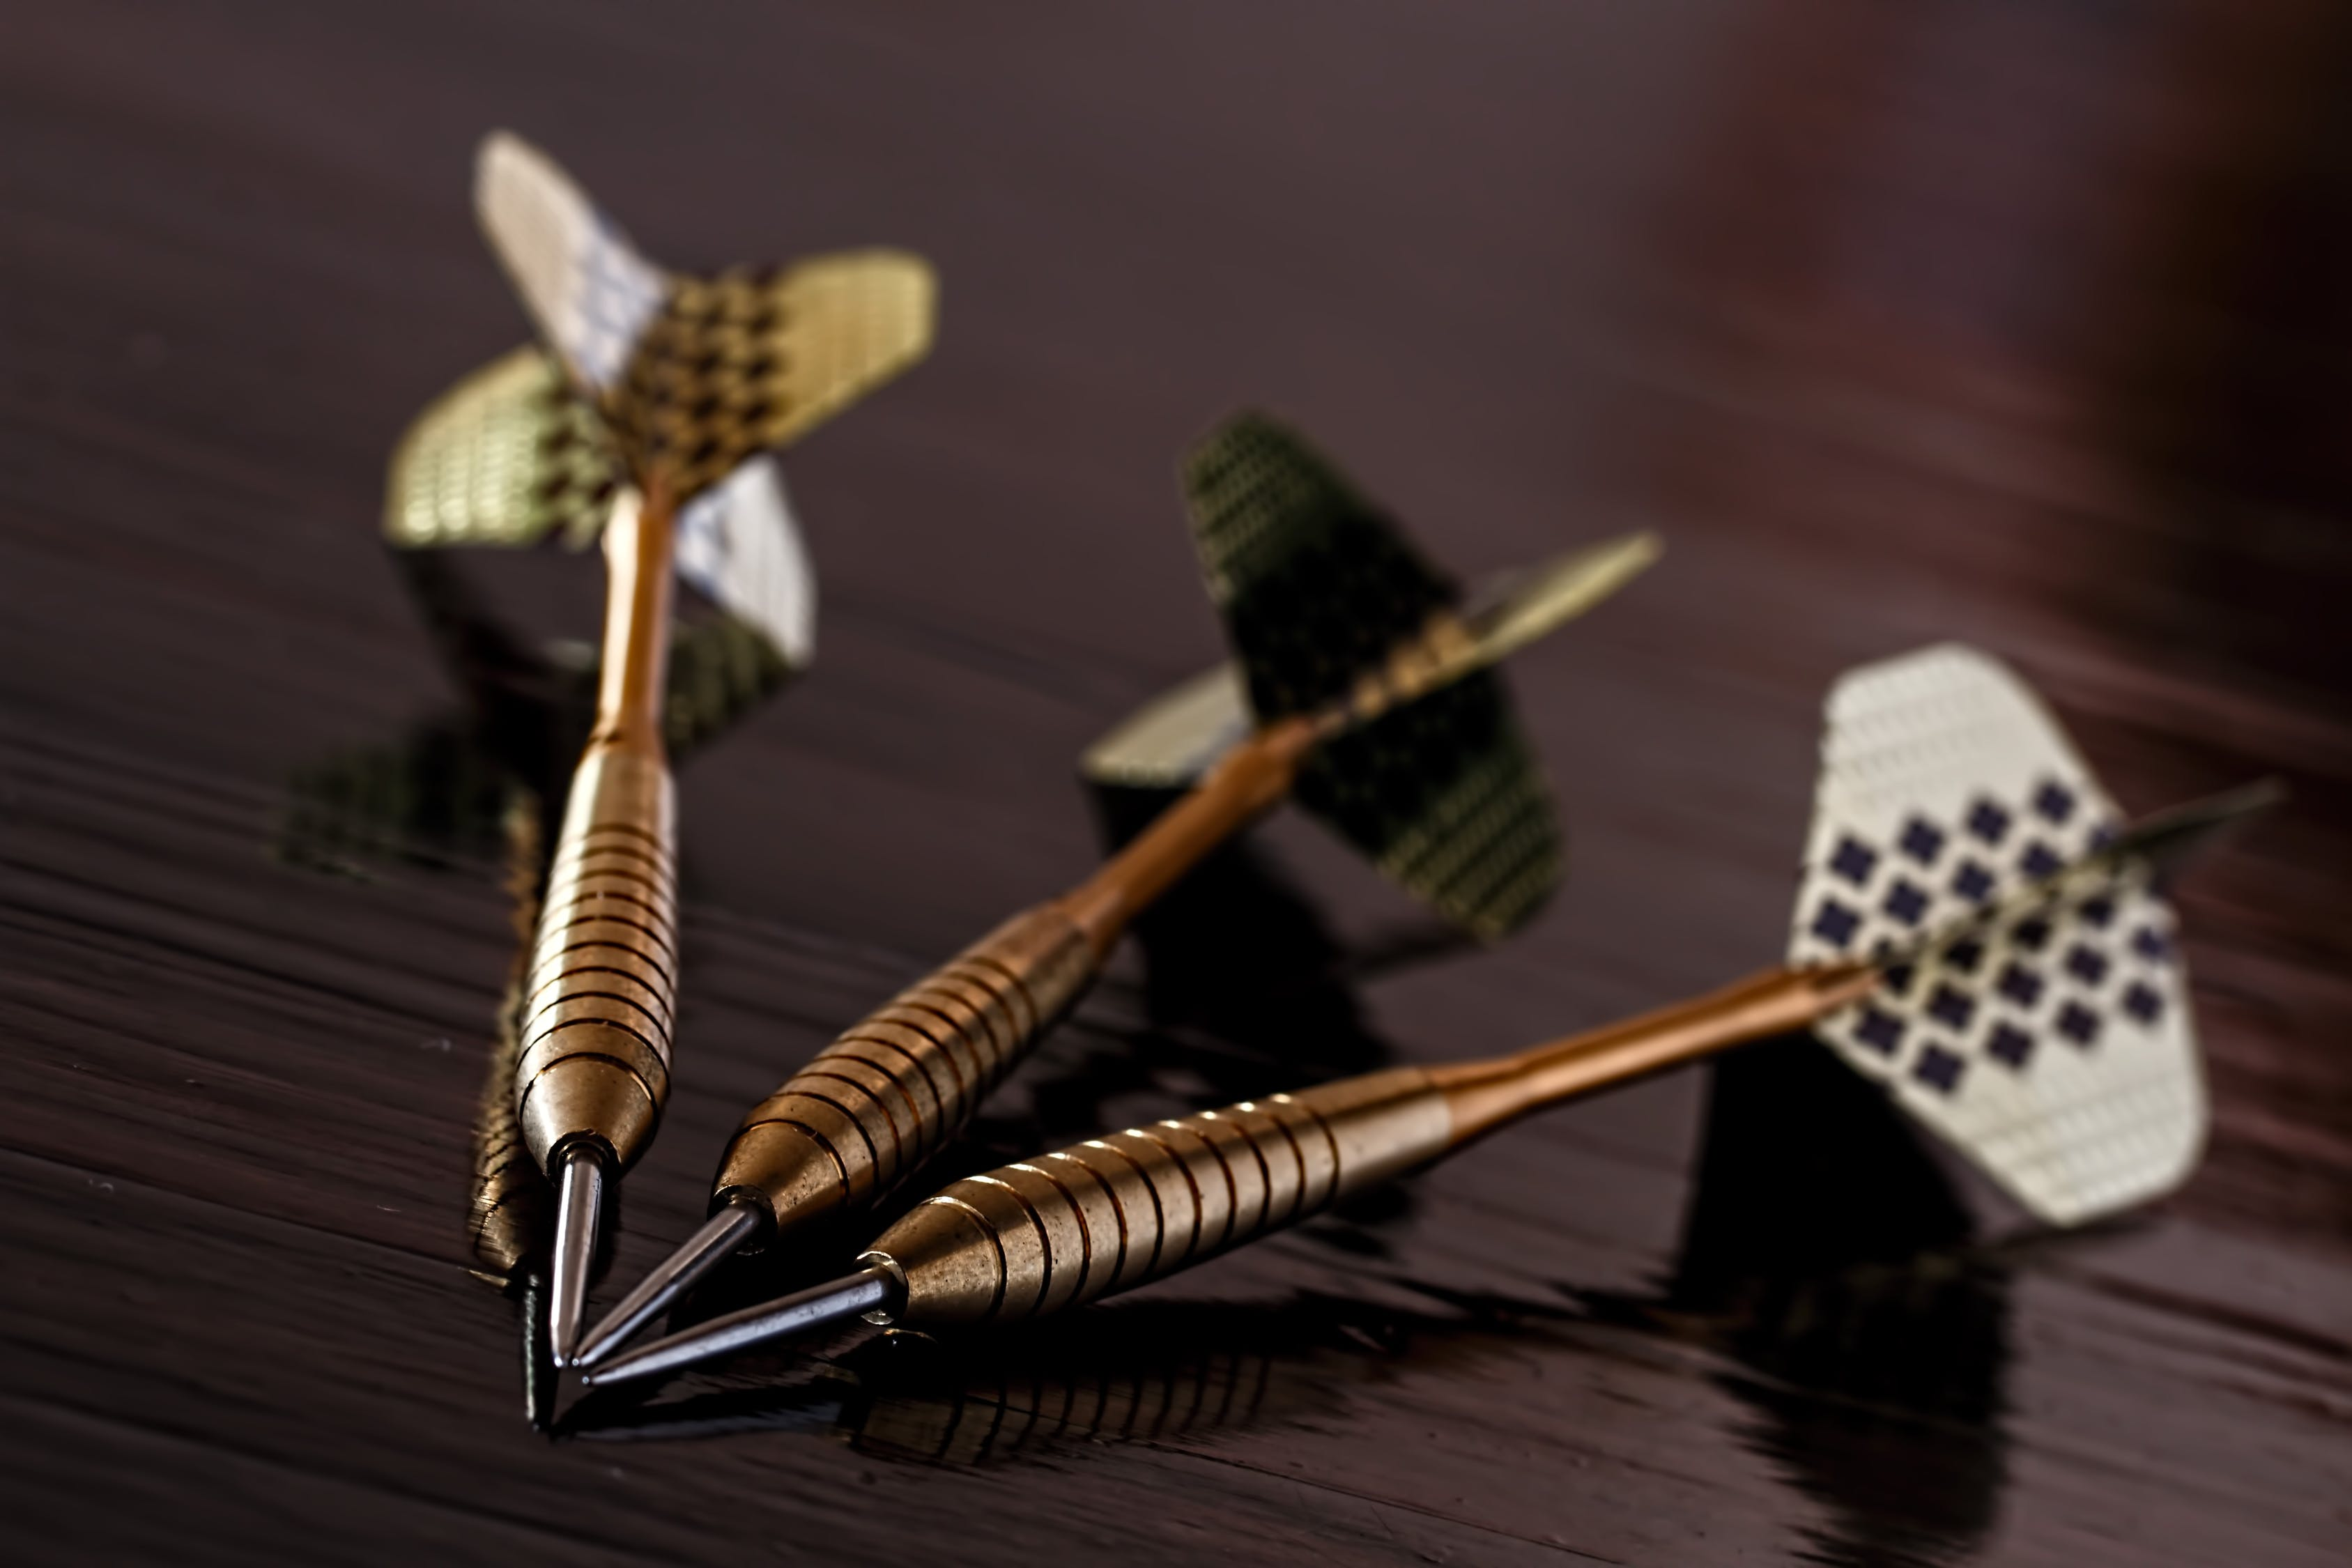 darts on a table